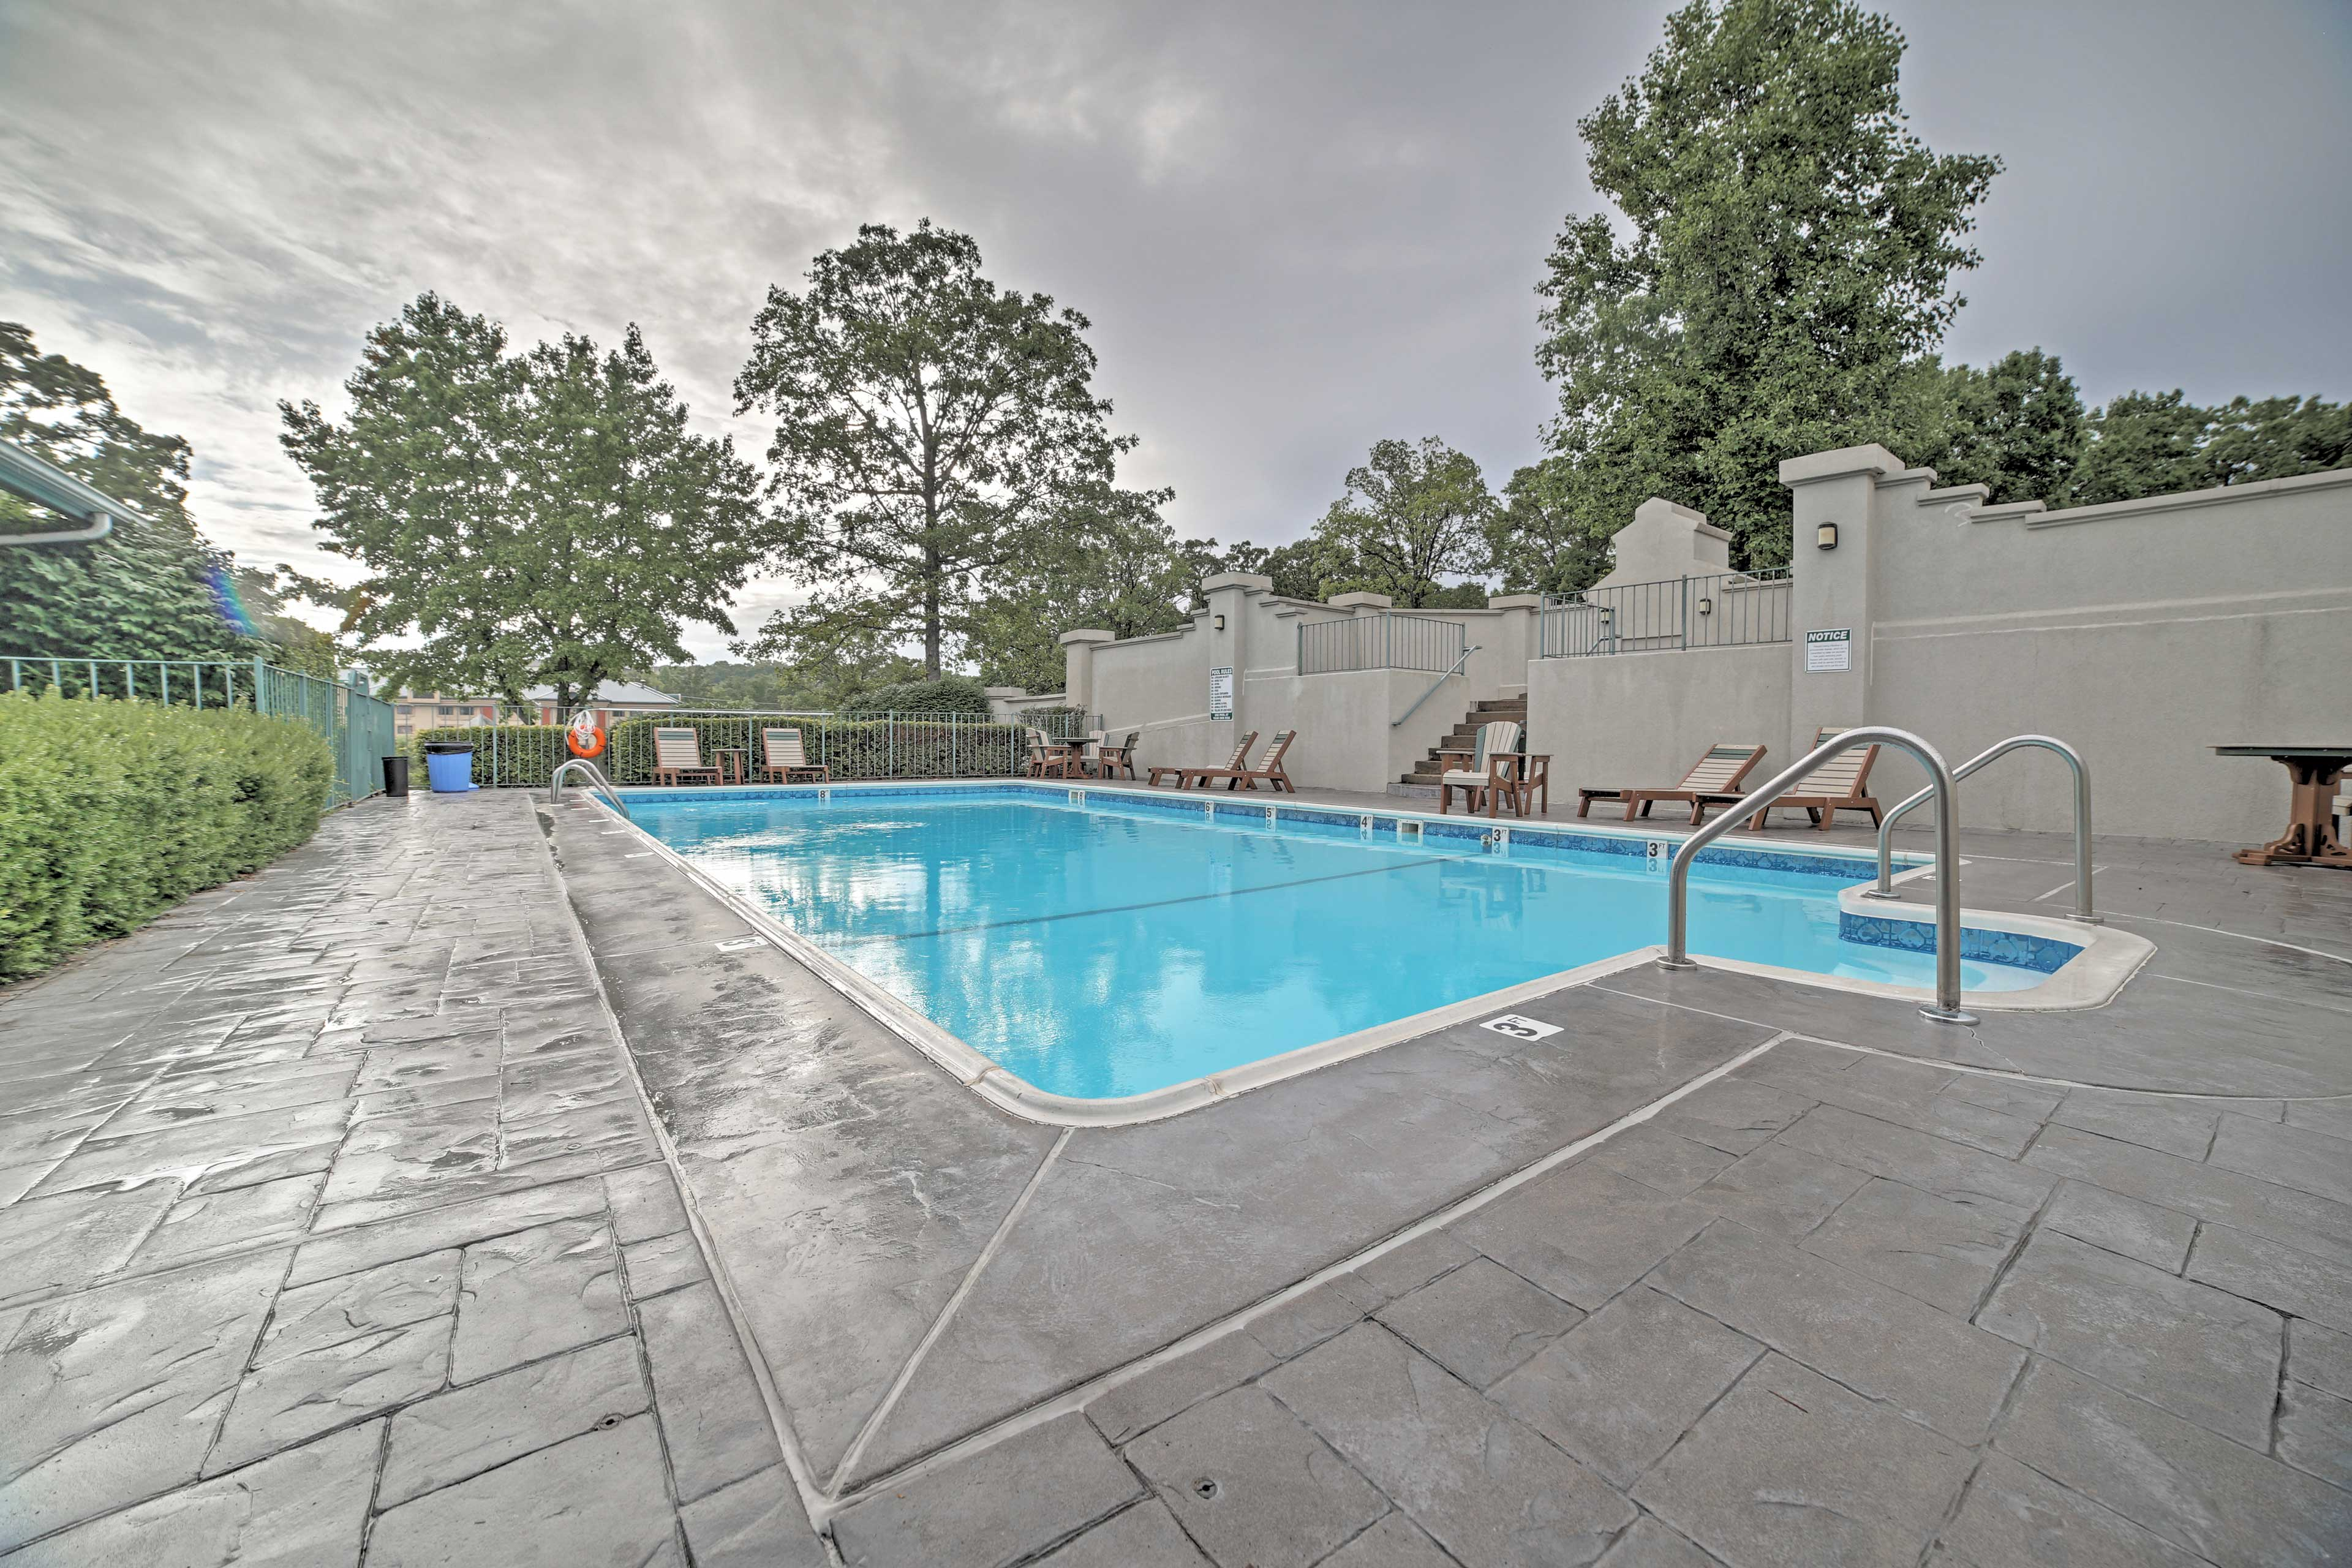 Cool off with a refreshing swim at the community pool.